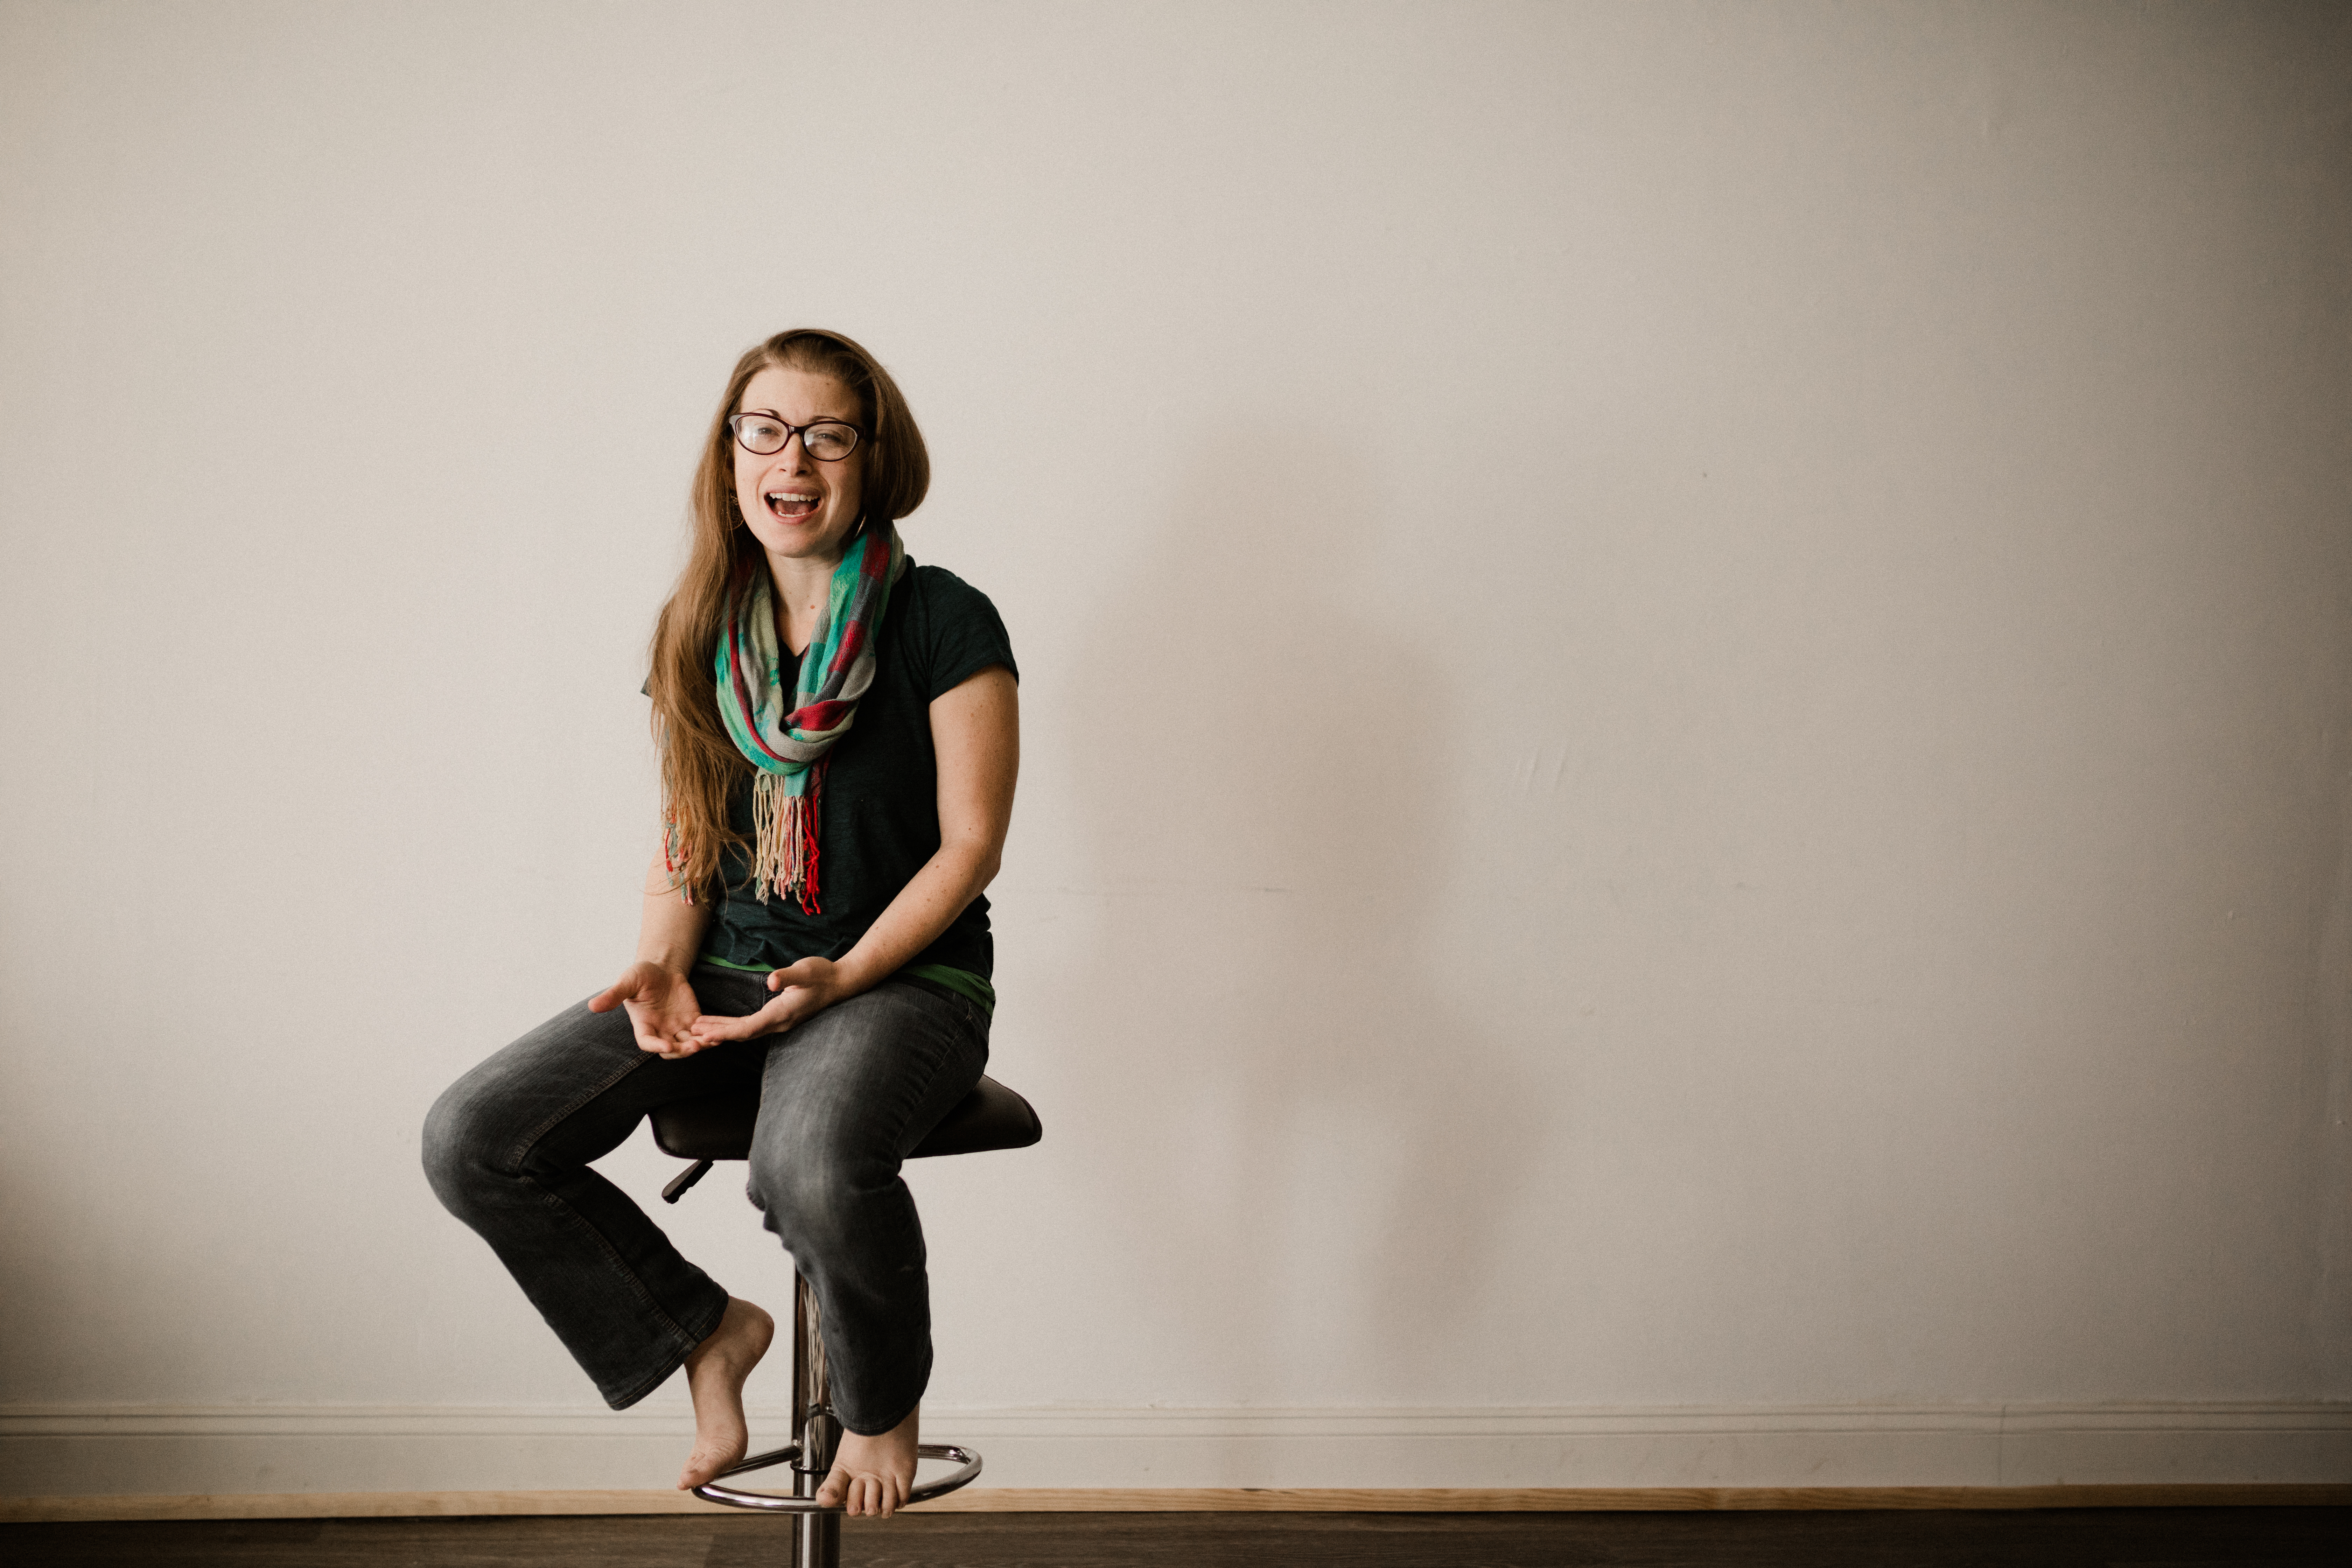 image of Jessie with green and red scarf, black t-shirt and blue jeans sitting on a stool barefoot.